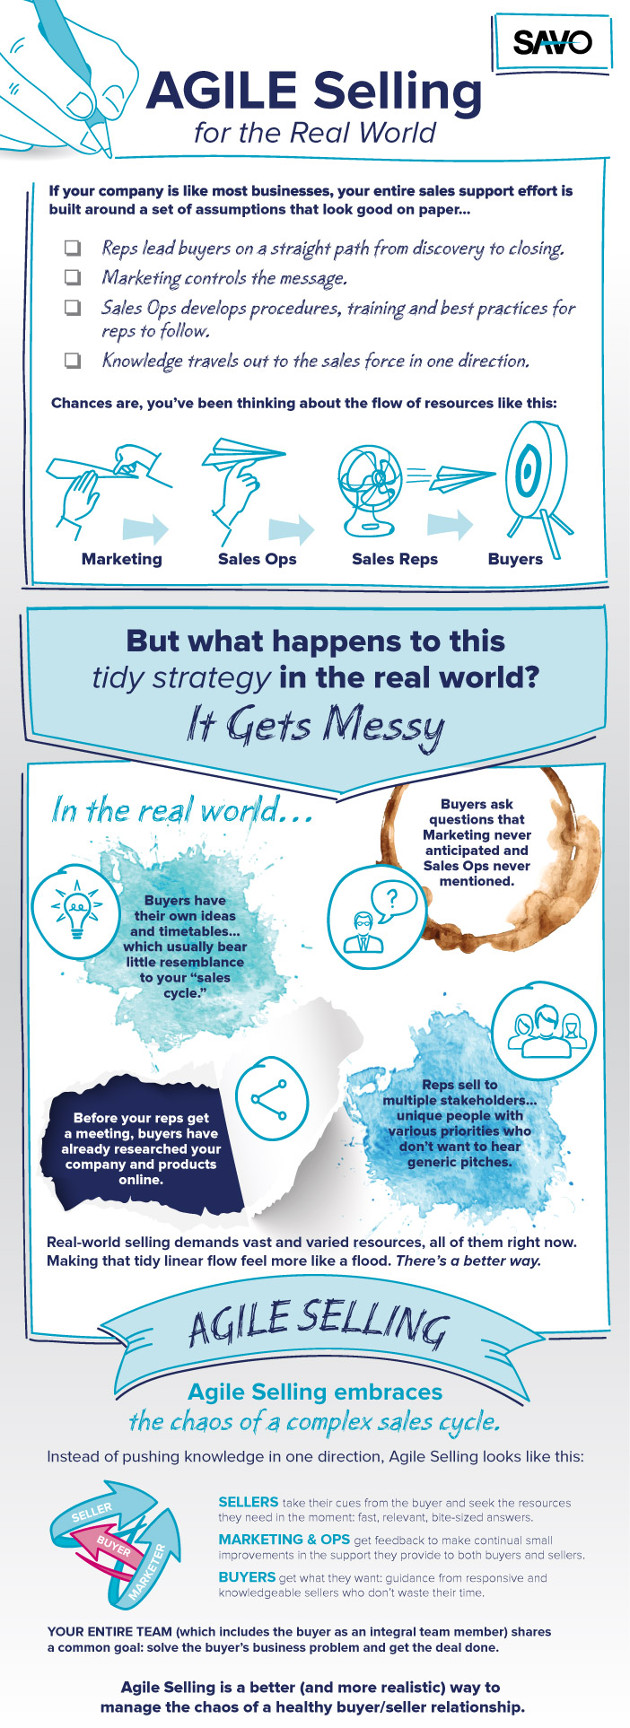 Infographic Agile Selling for the Real World